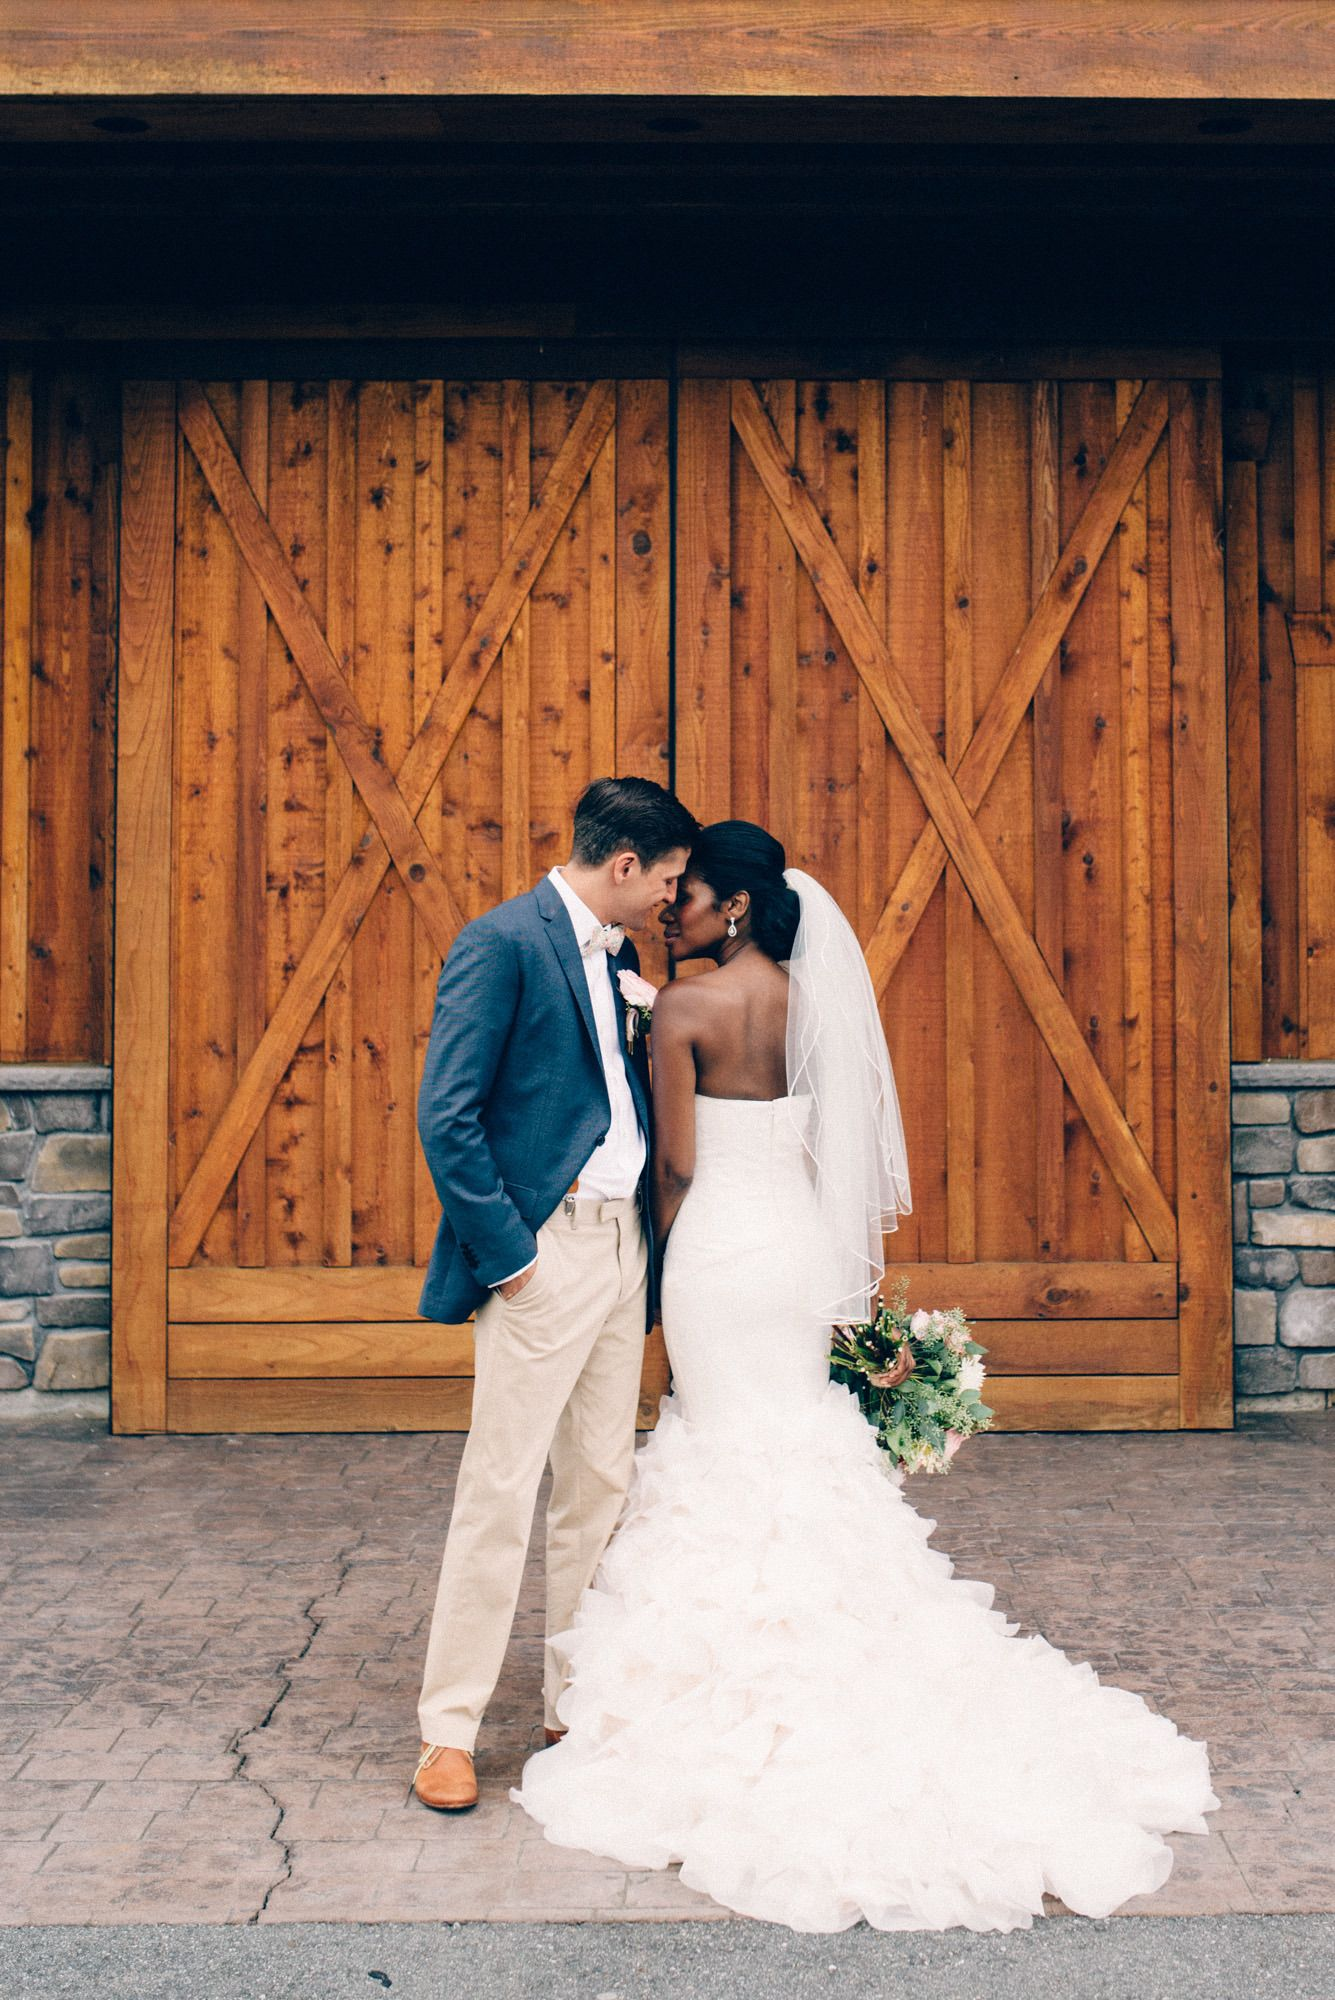 13+ Where to donate wedding dress vancouver ideas in 2021